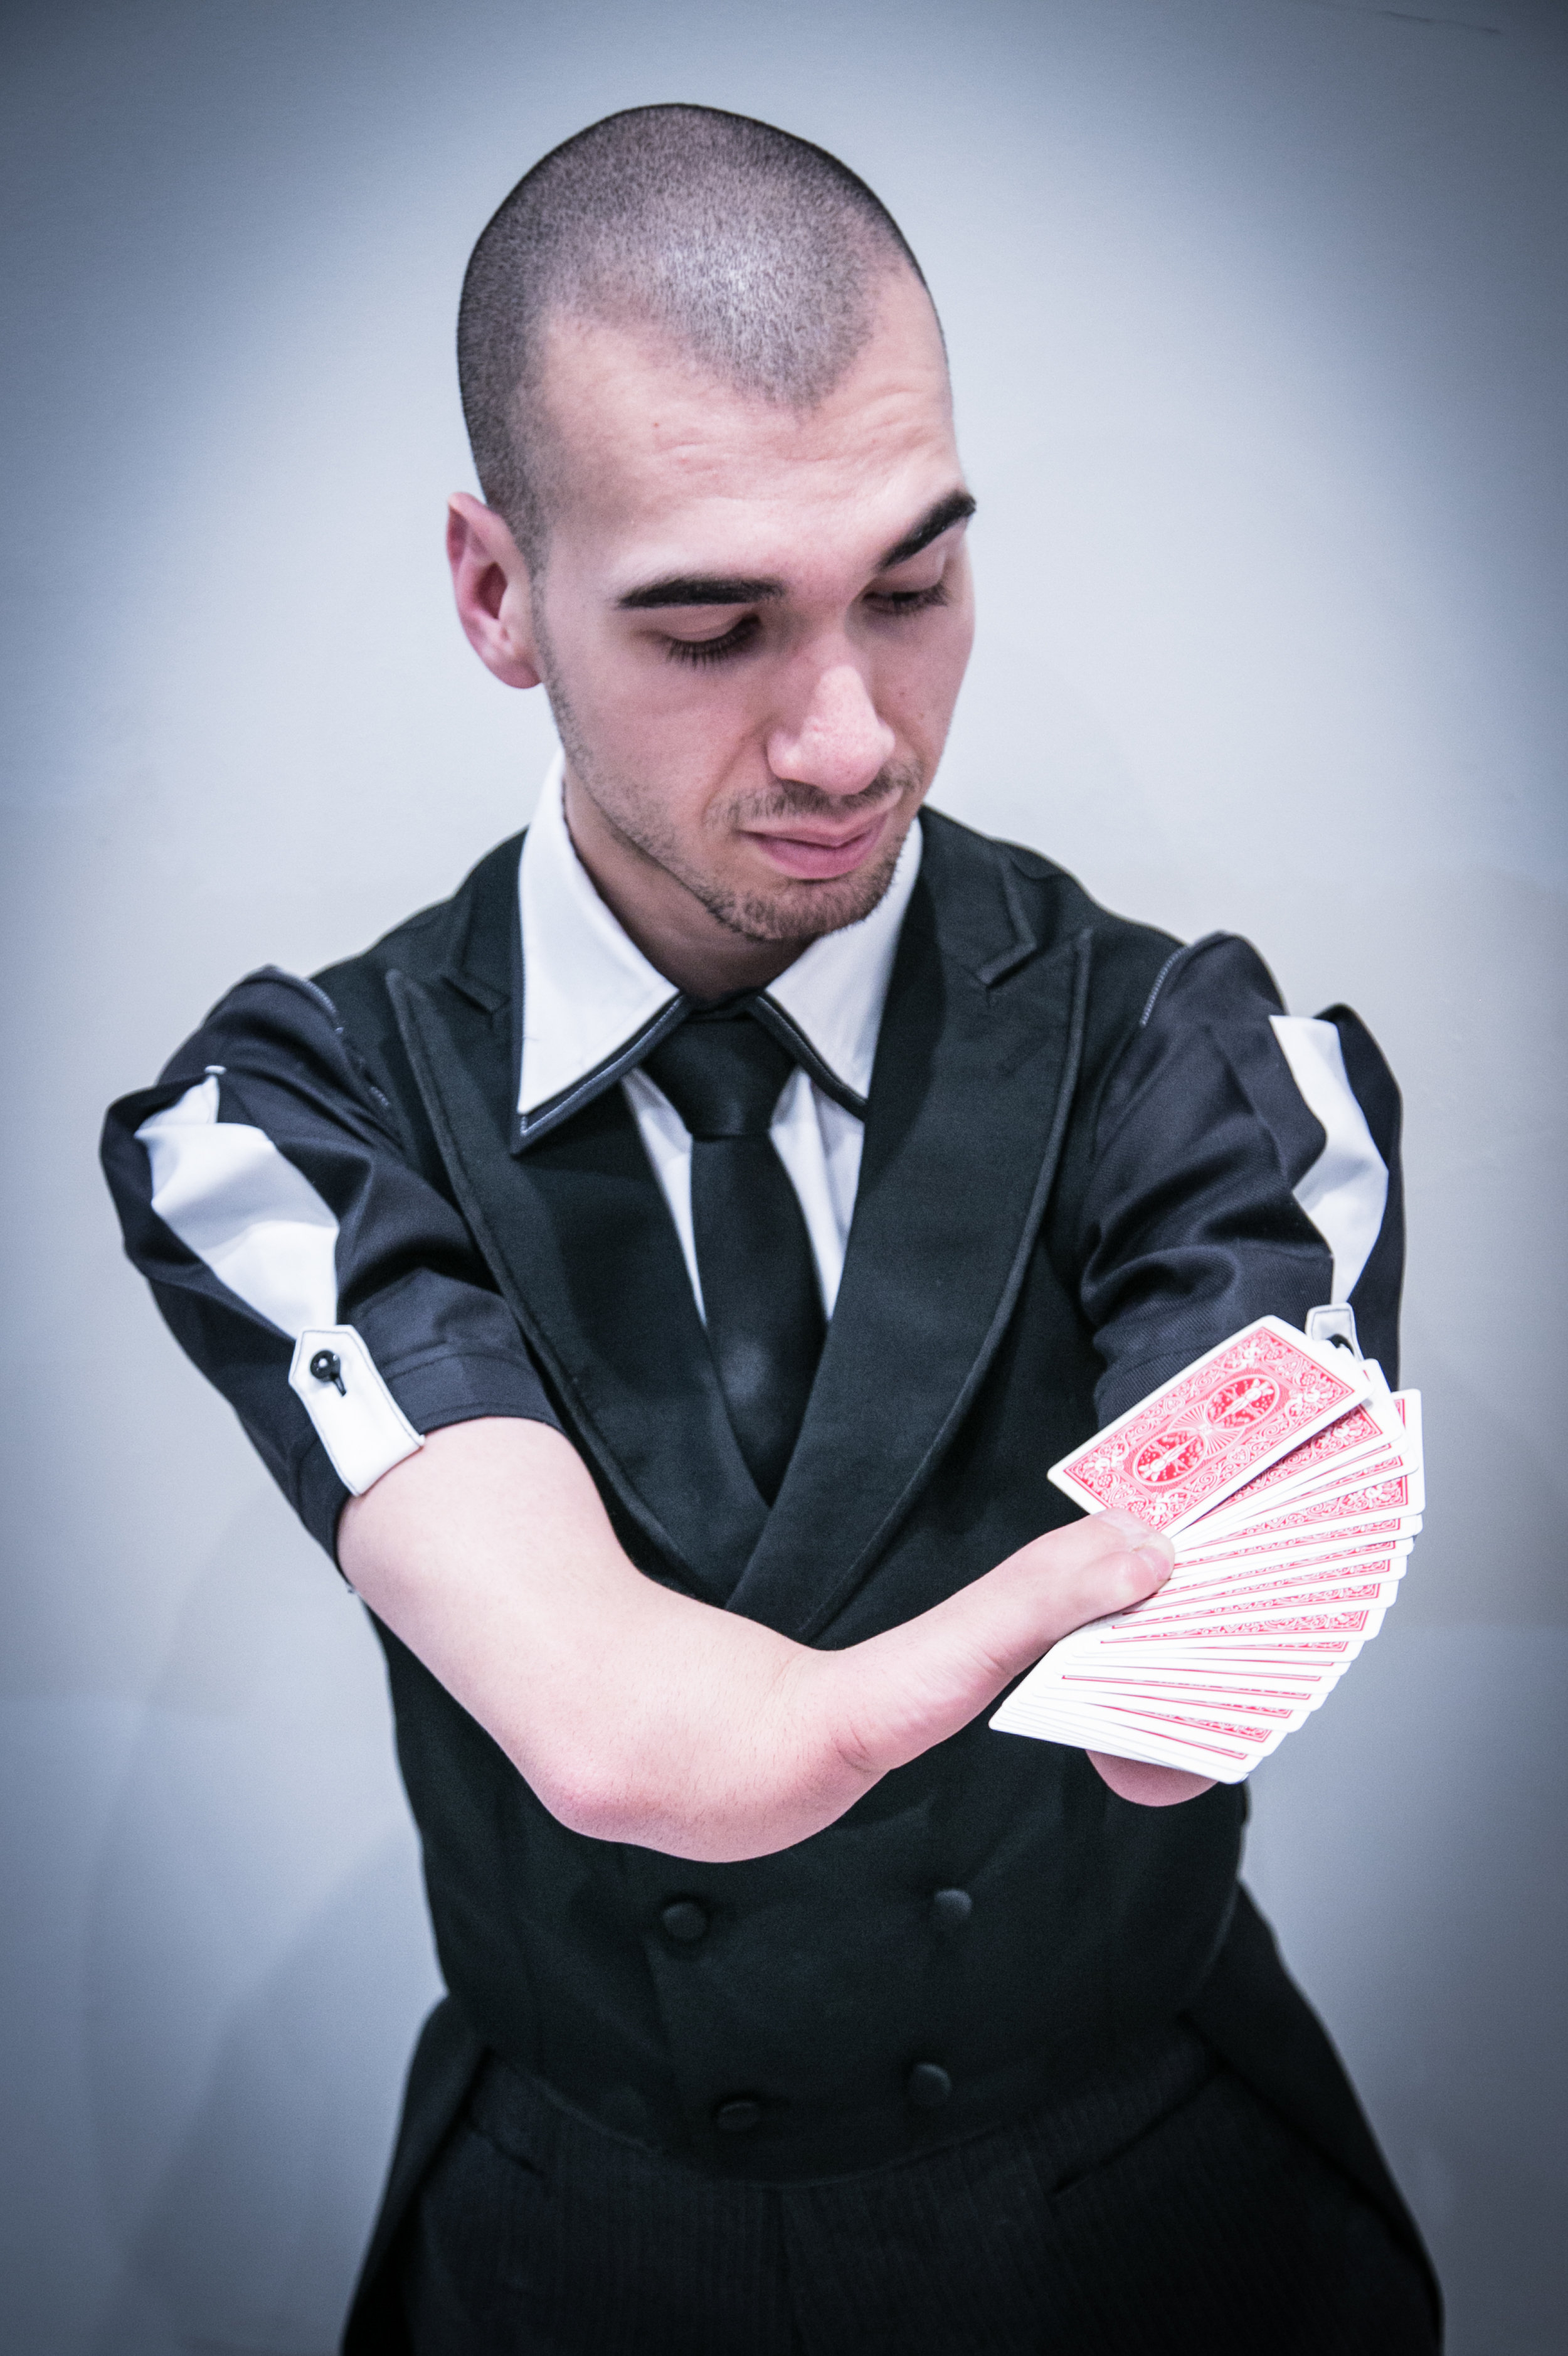 Mahdi Gilbert Corporate Magician Sleight of Hand.jpg